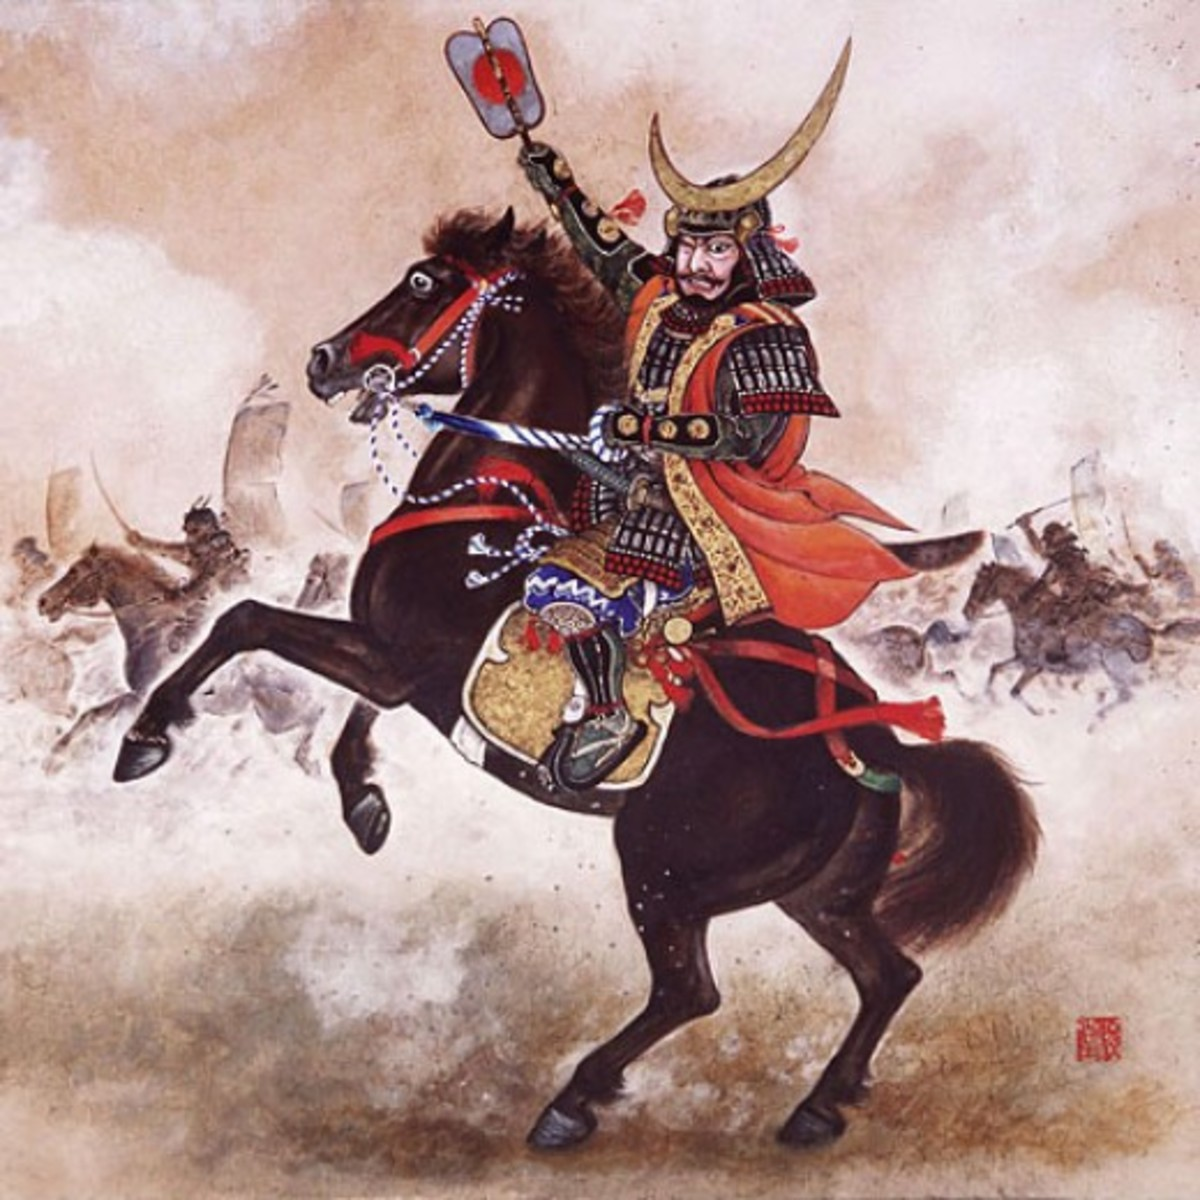 Samurai - 10 things you didn't know about them